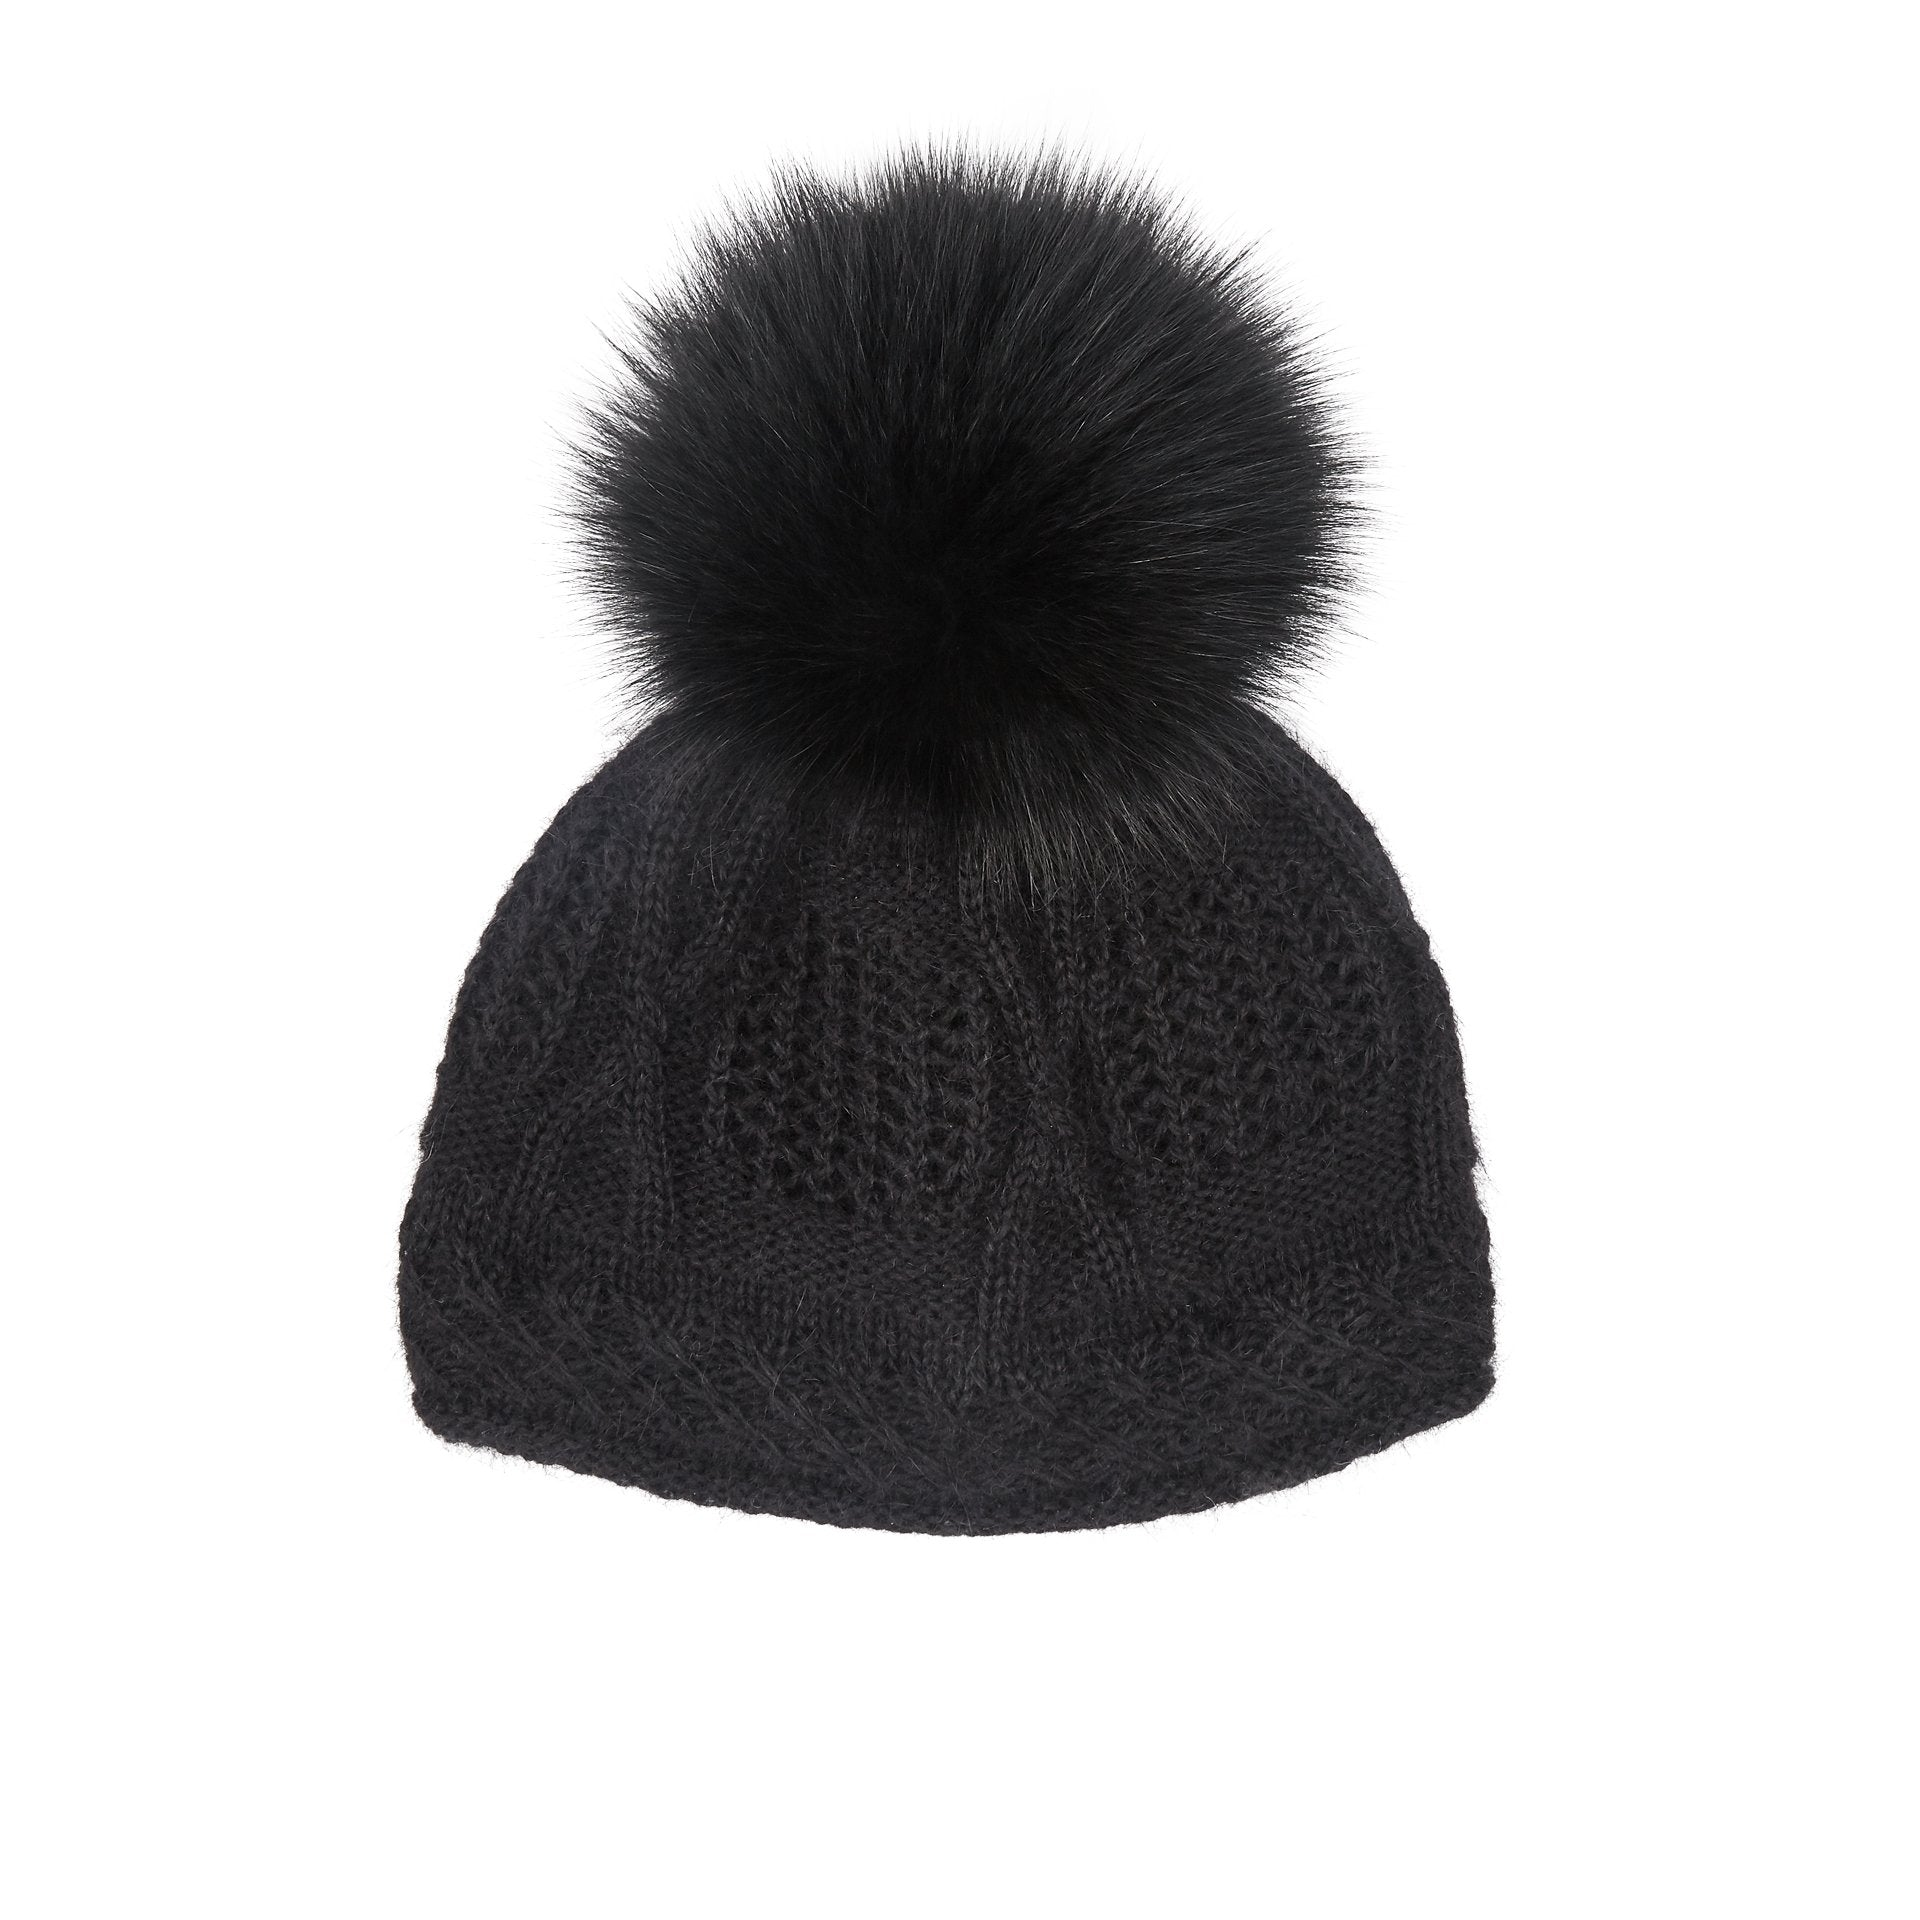 Verbier beanie - Women's Beanies - Lock & Co. Hatters London UK